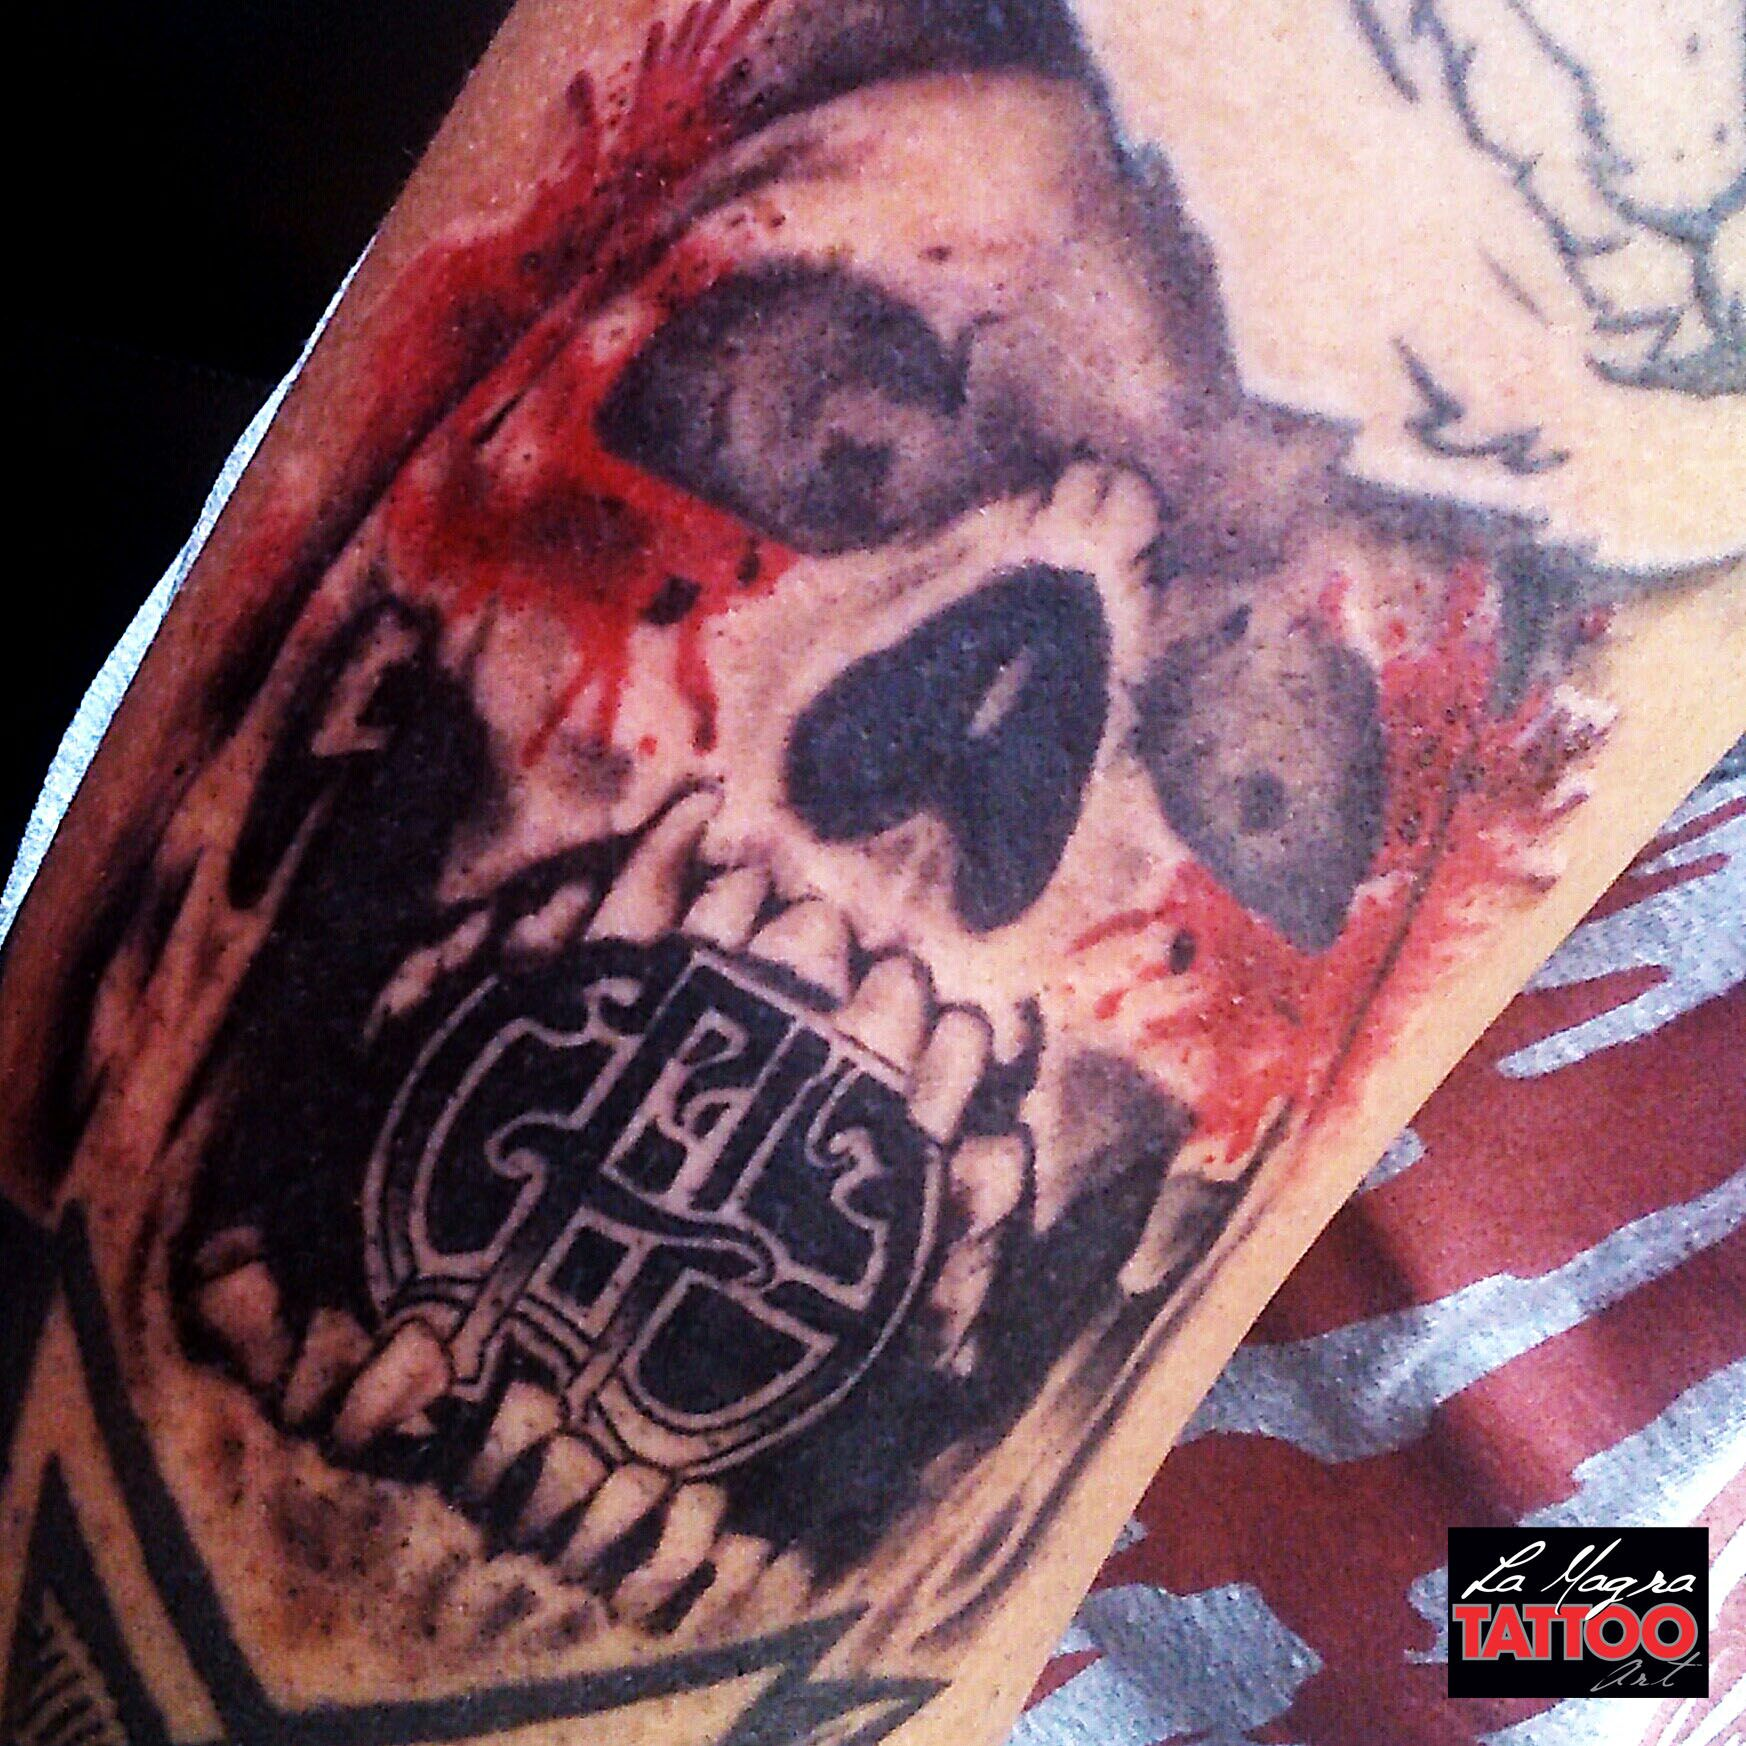 Route 66 tattoo picture at checkoutmyink com -  Pantera Cfh Tattoo Lamagratattoo